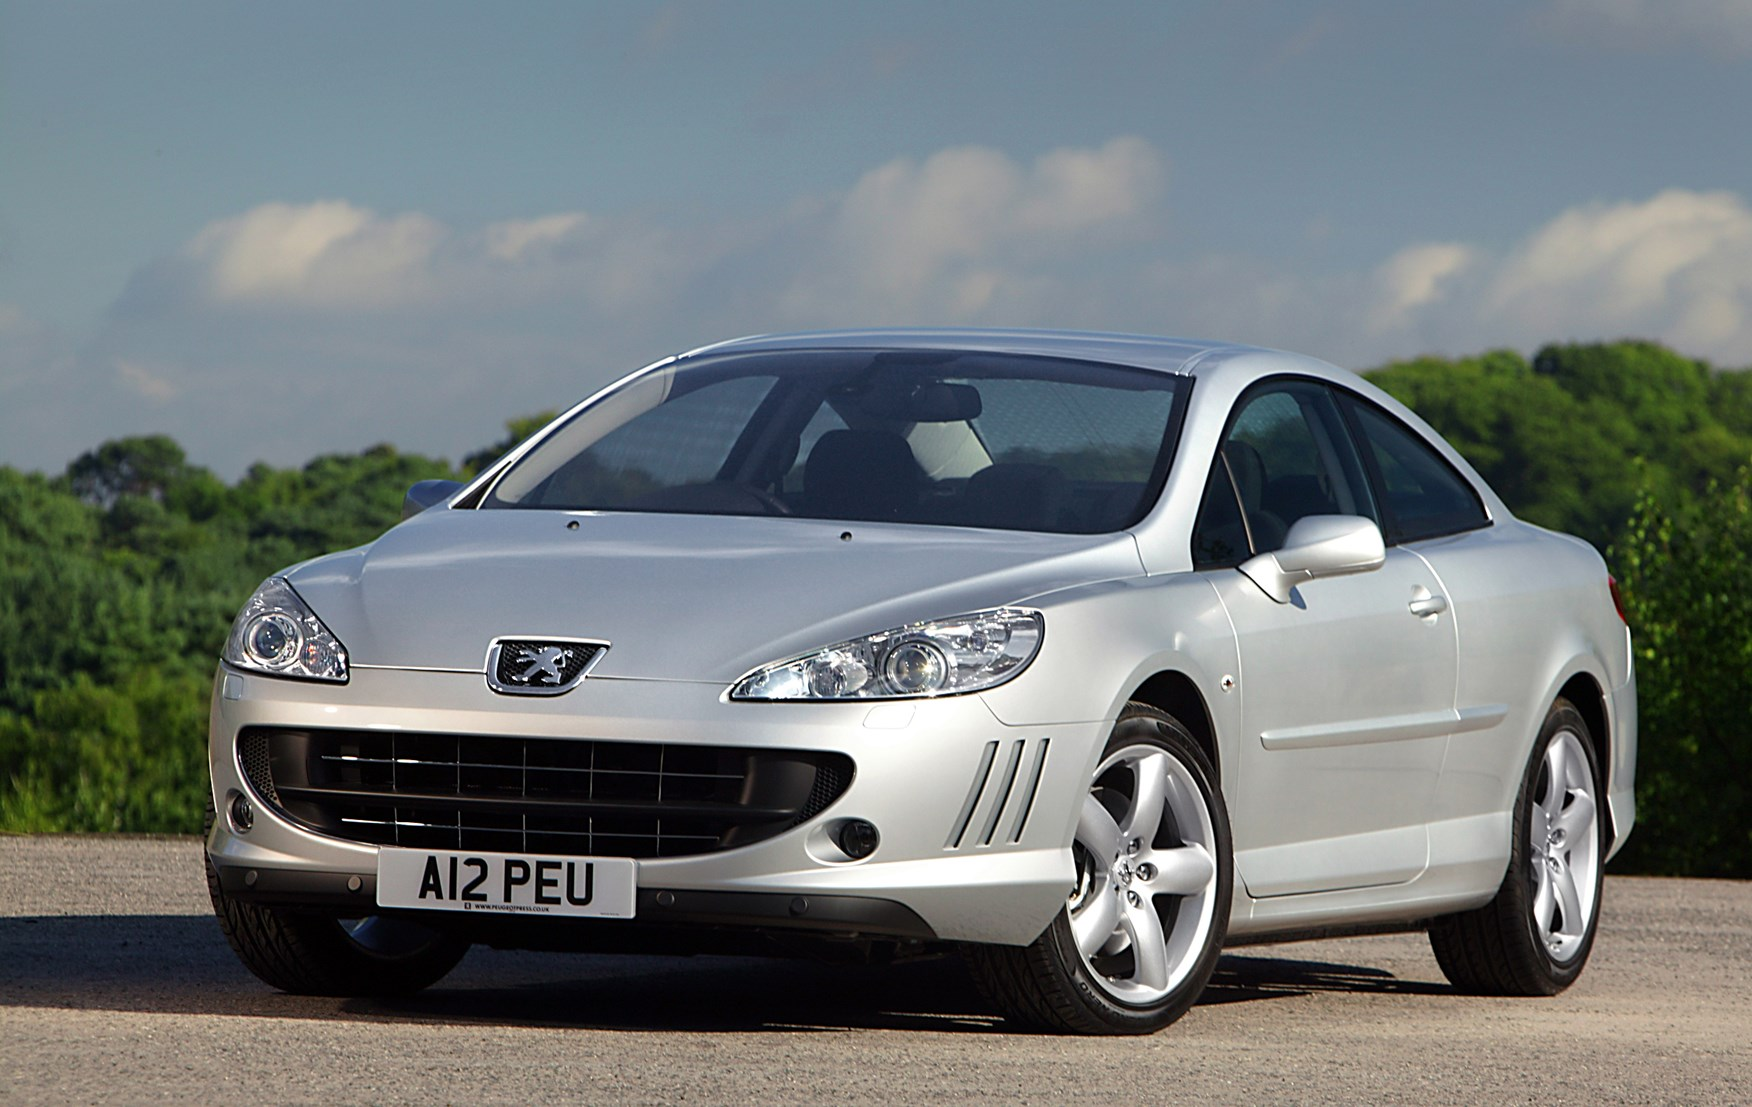 Used Peugeot 407 Coupe (2006 - 2010) Review